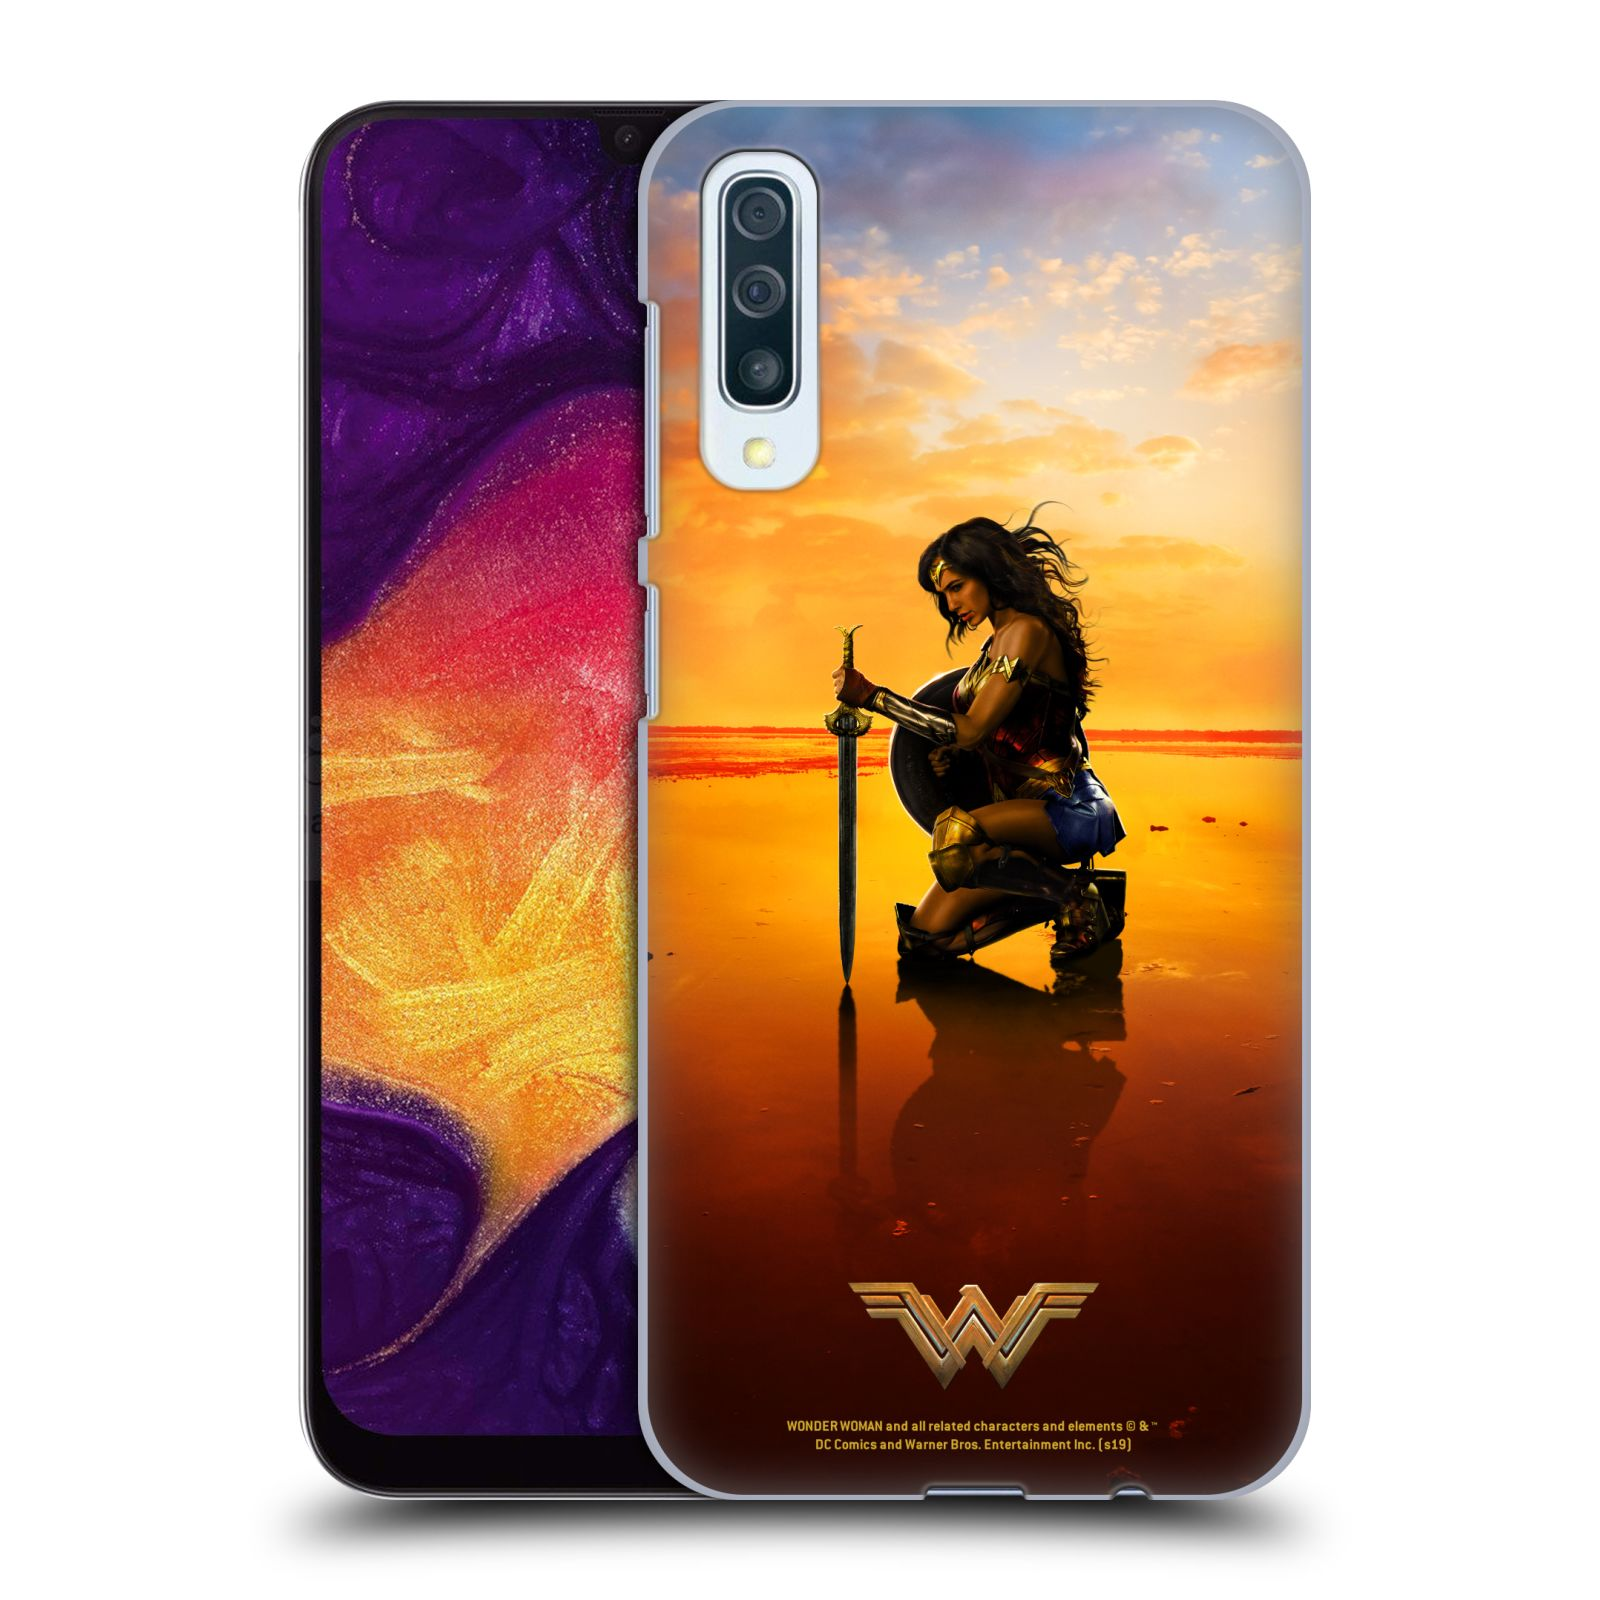 Official Wonder Woman Movie Posters Sword And Shield Case for Samsung Galaxy A50/A30s (2019)